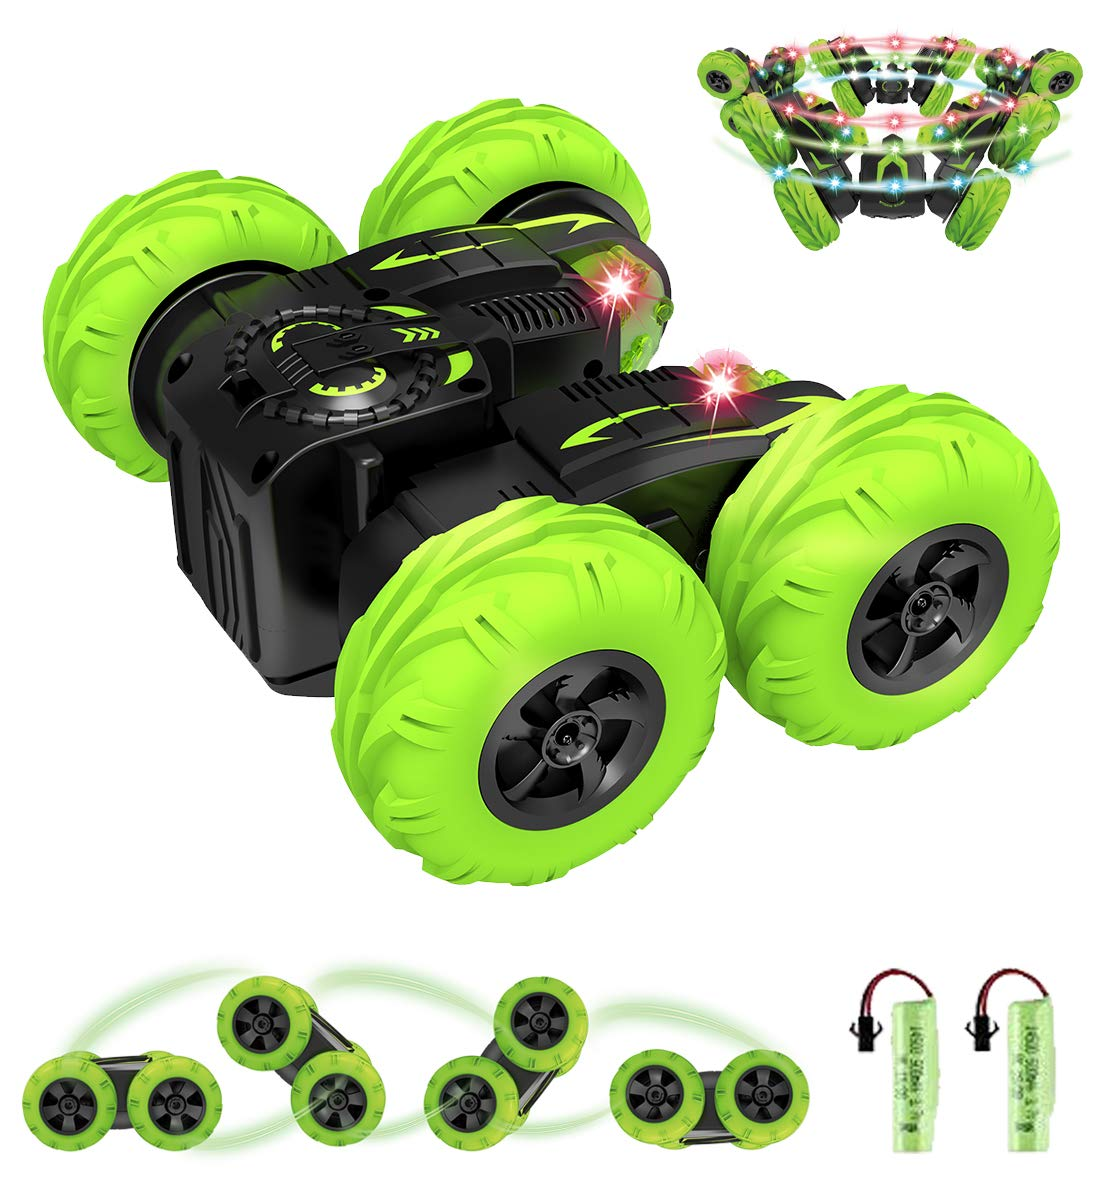 POWERbeast RC Cars Stunt Car Toys for Boys, 2.4Ghz Remote Control 4WD Car, Double Sided Rotating,360° Flips and Spin,Toy Gifts for 2, 3, 4, 5, 6, 7, 8 Year Old Boy